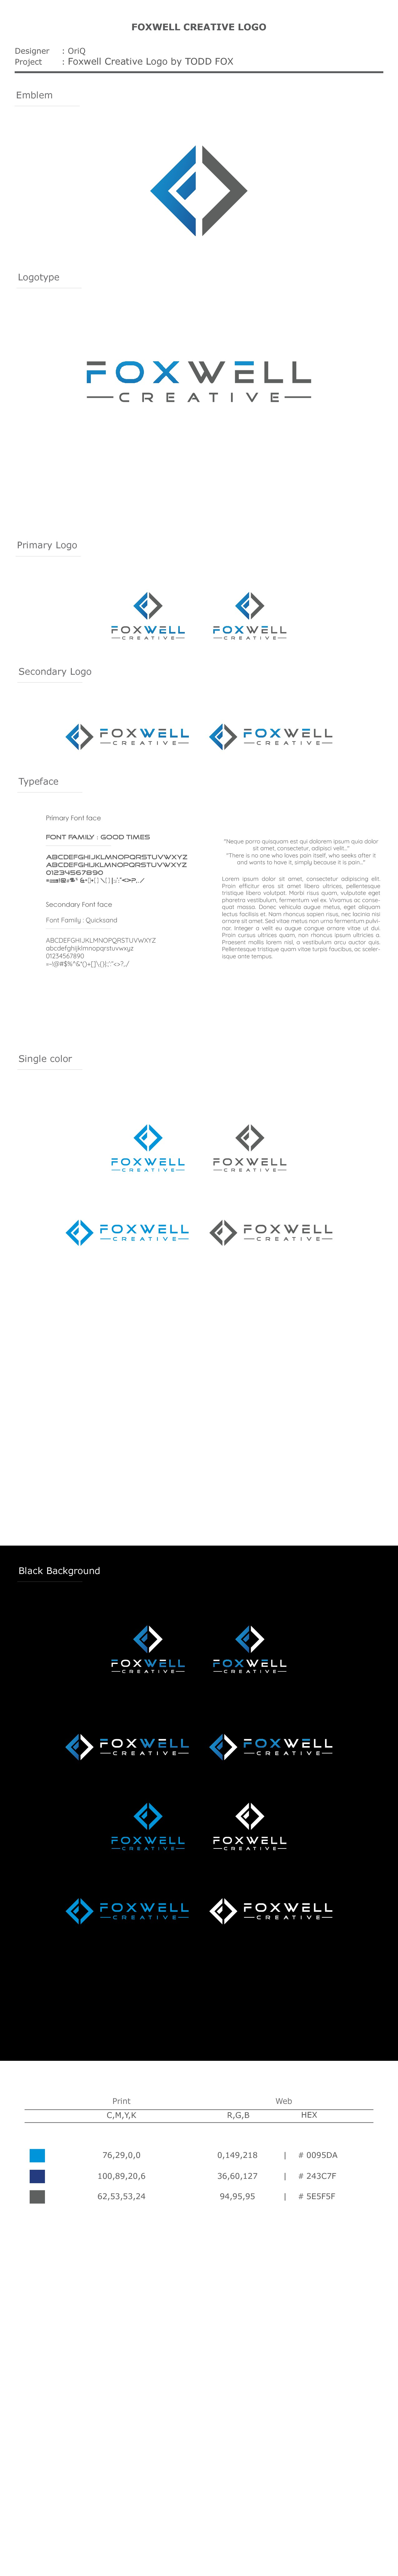 Create a Unique and Thoughtful Logo for FoxwellCreative